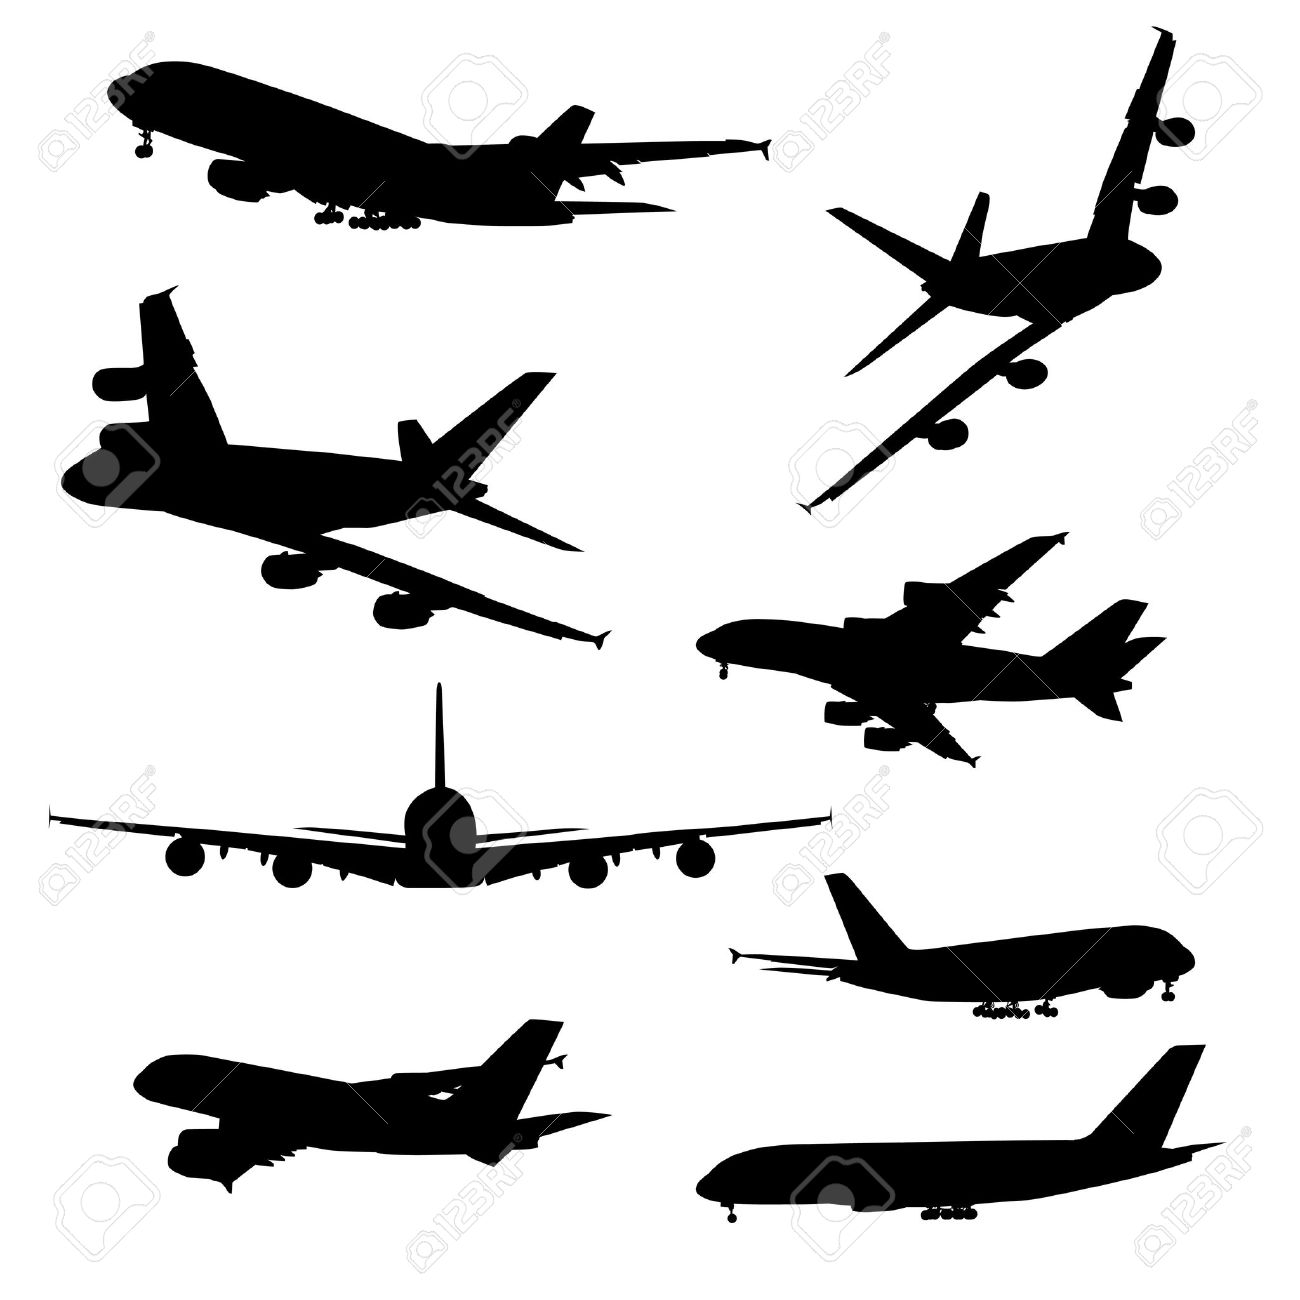 Airplane silhouettes, black isolated on white background - 12897643